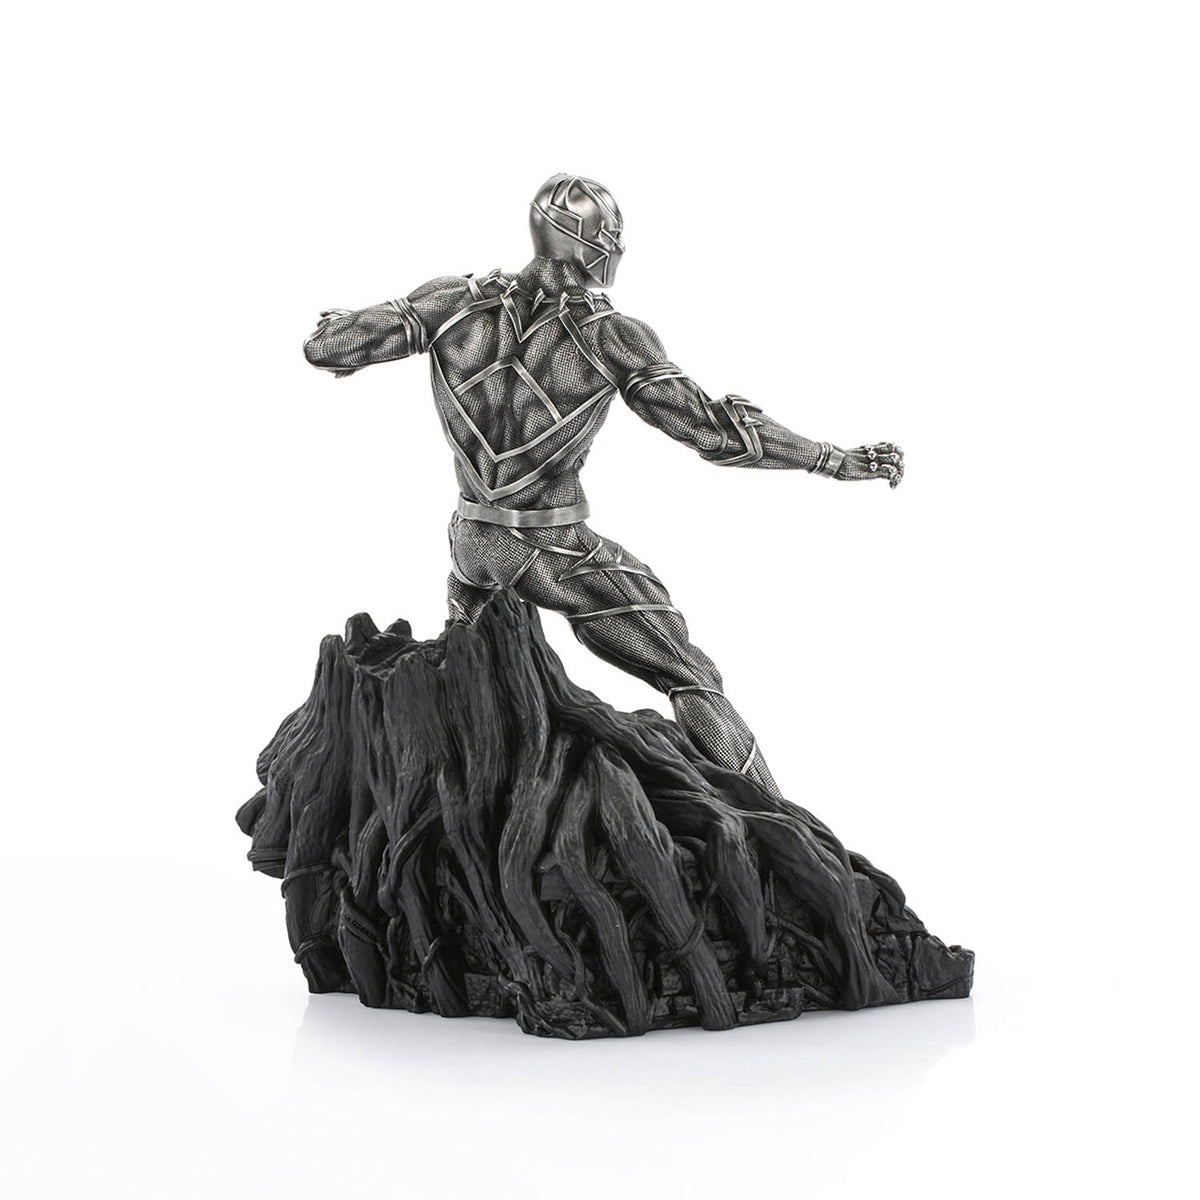 Limited Edition Black Panther Guardian Figurine (pre-order)